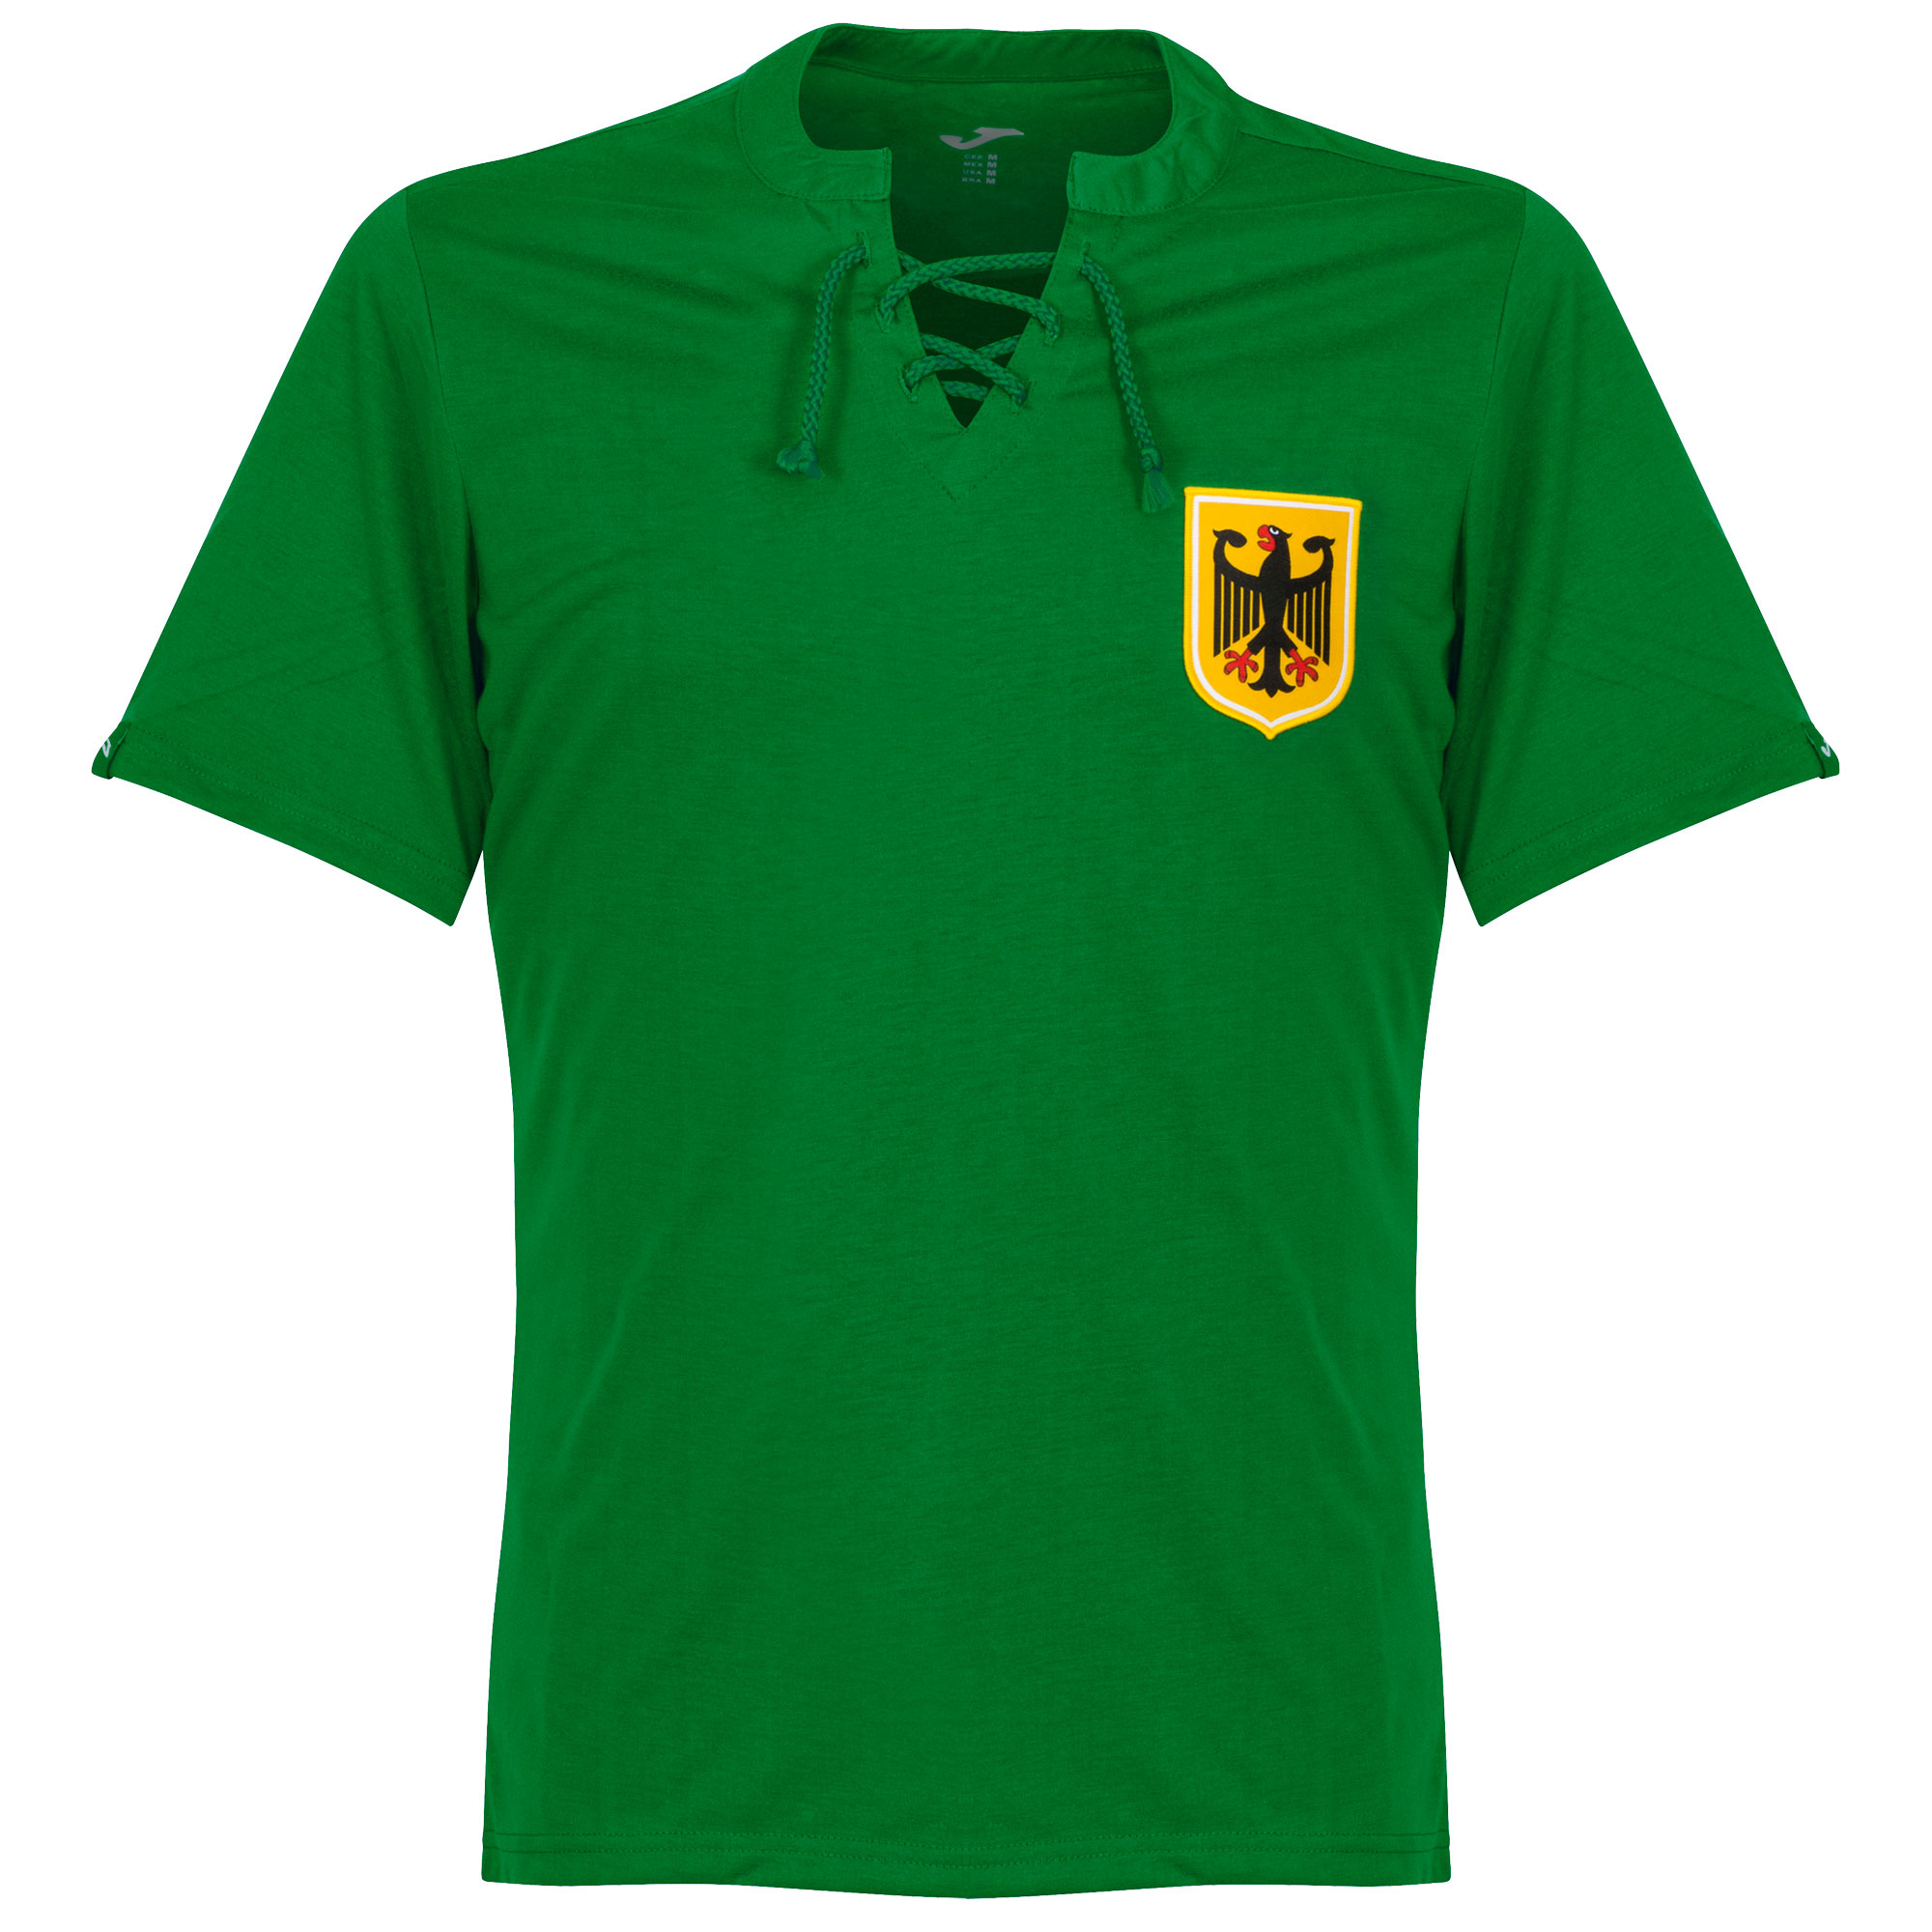 Germany 1950s Retro Shirt - Green